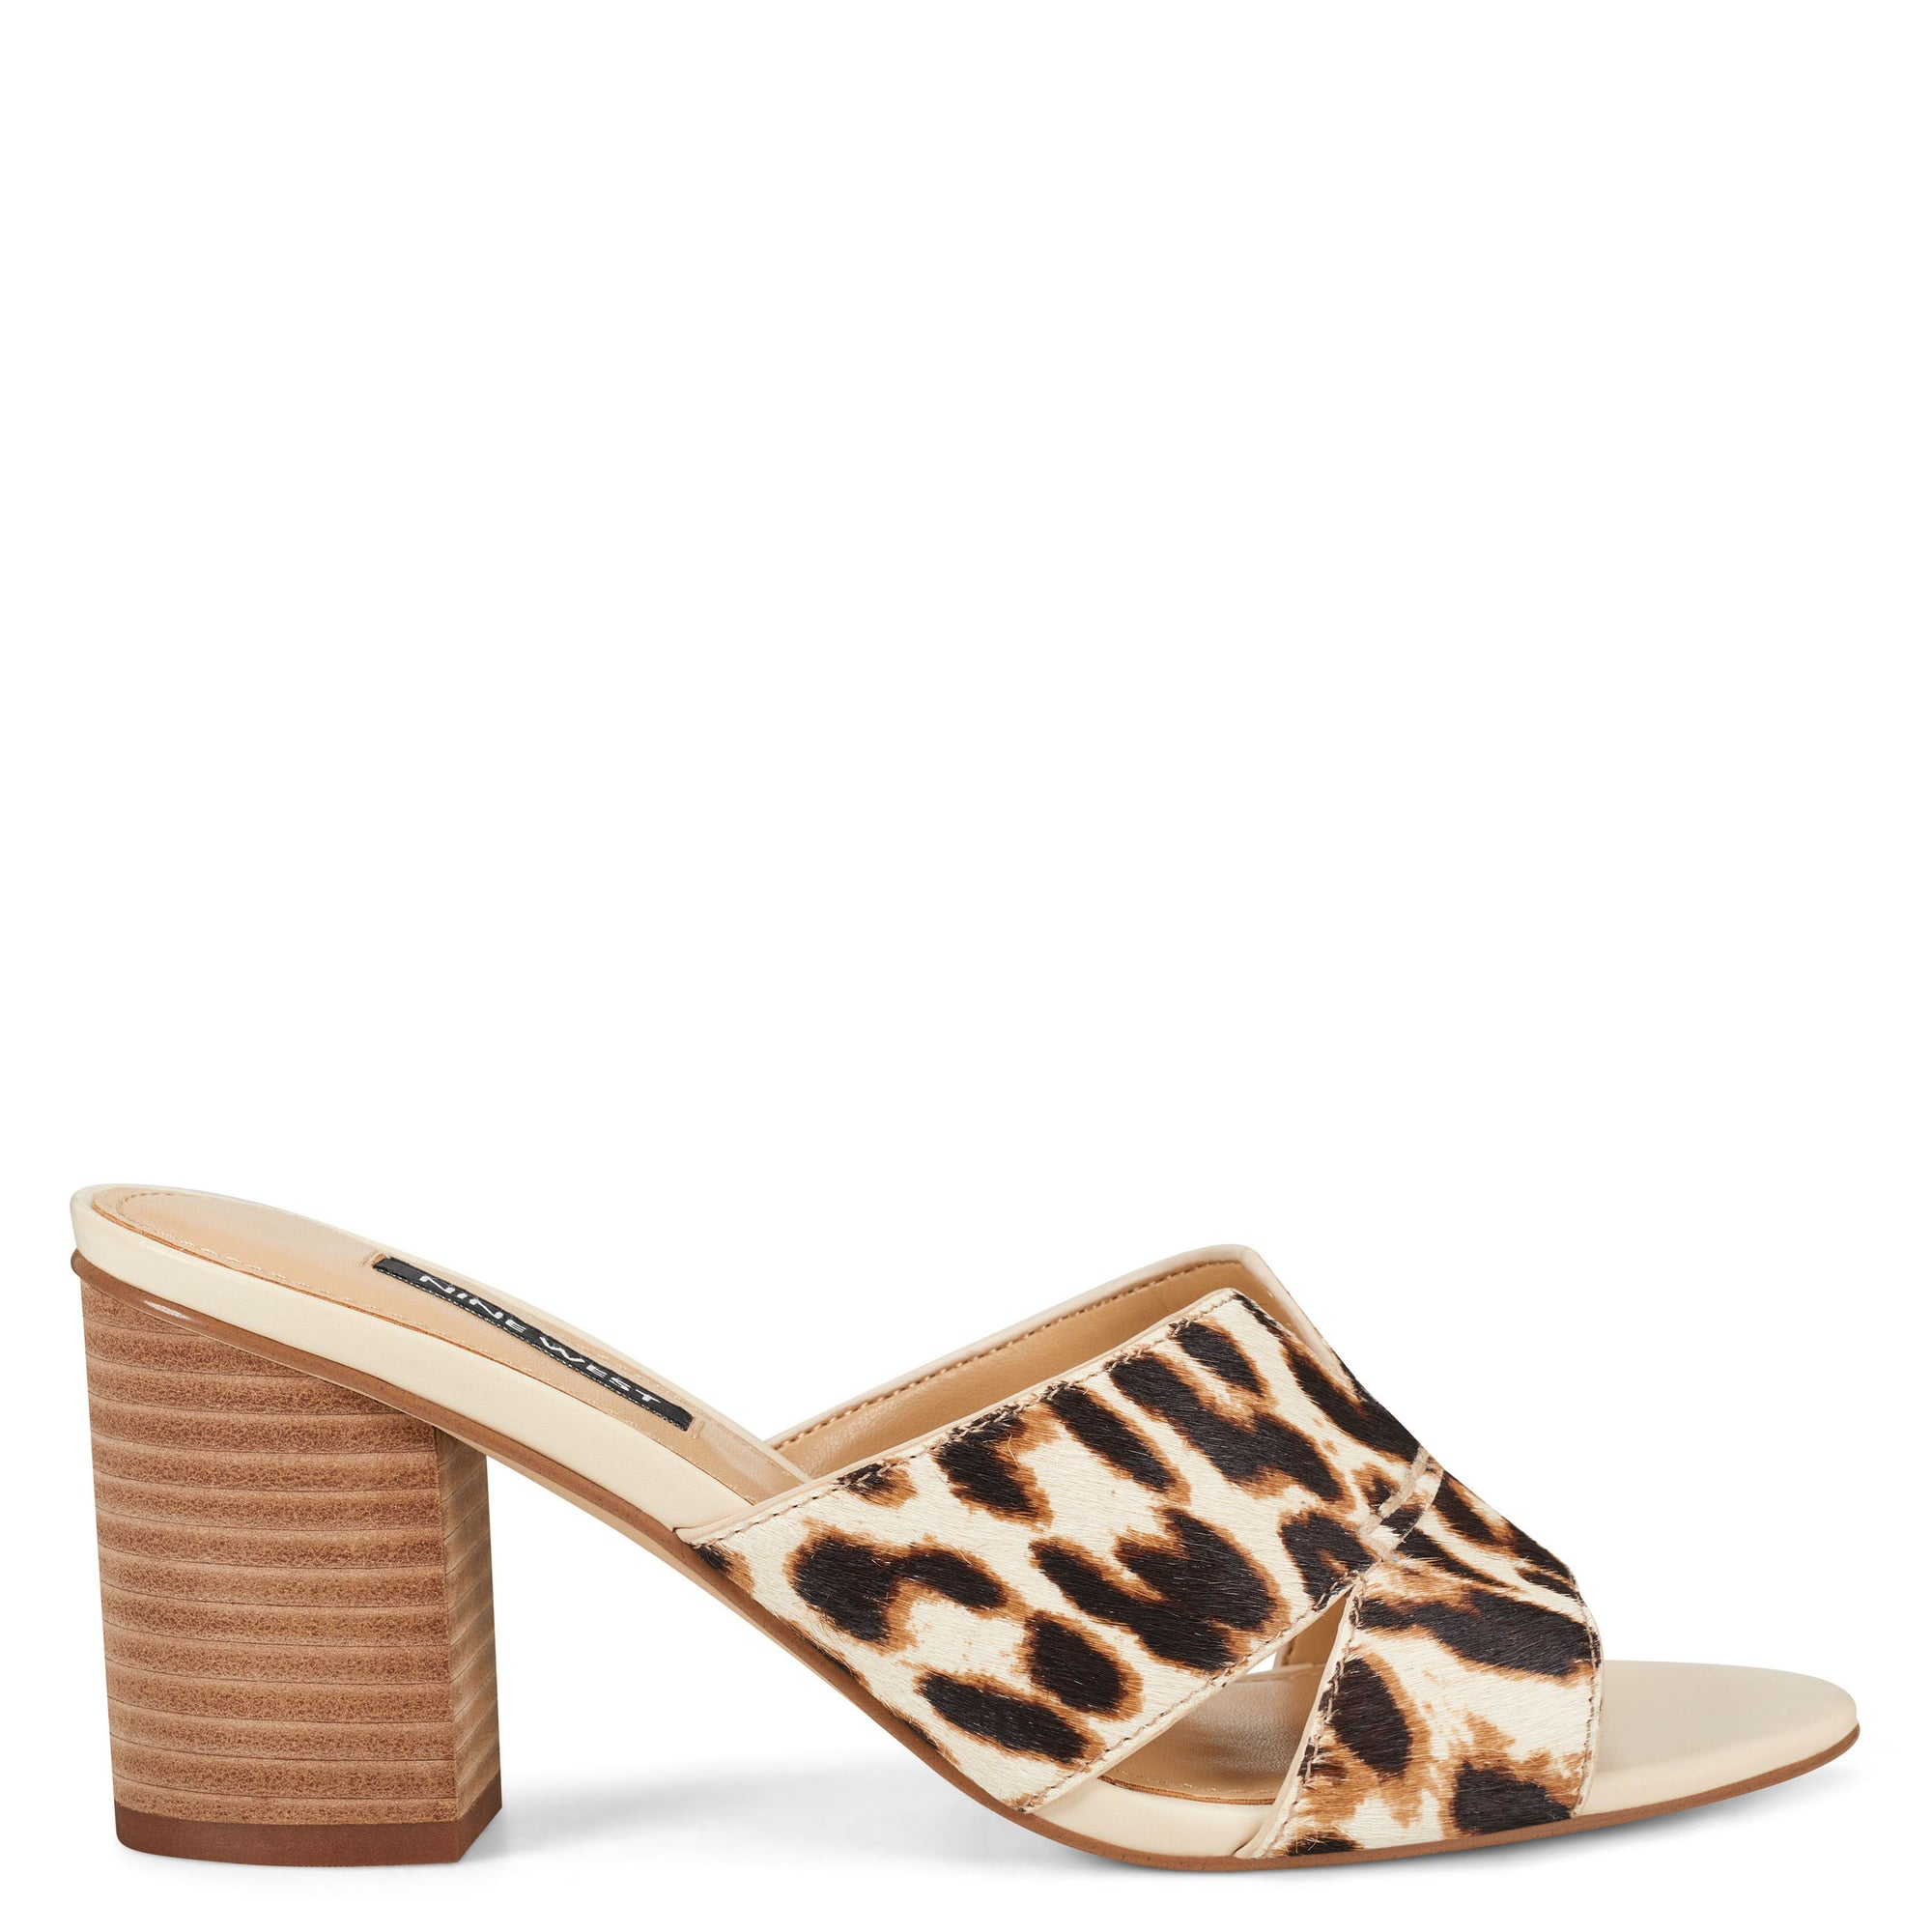 nicolet-slide-sandals-in-leopard